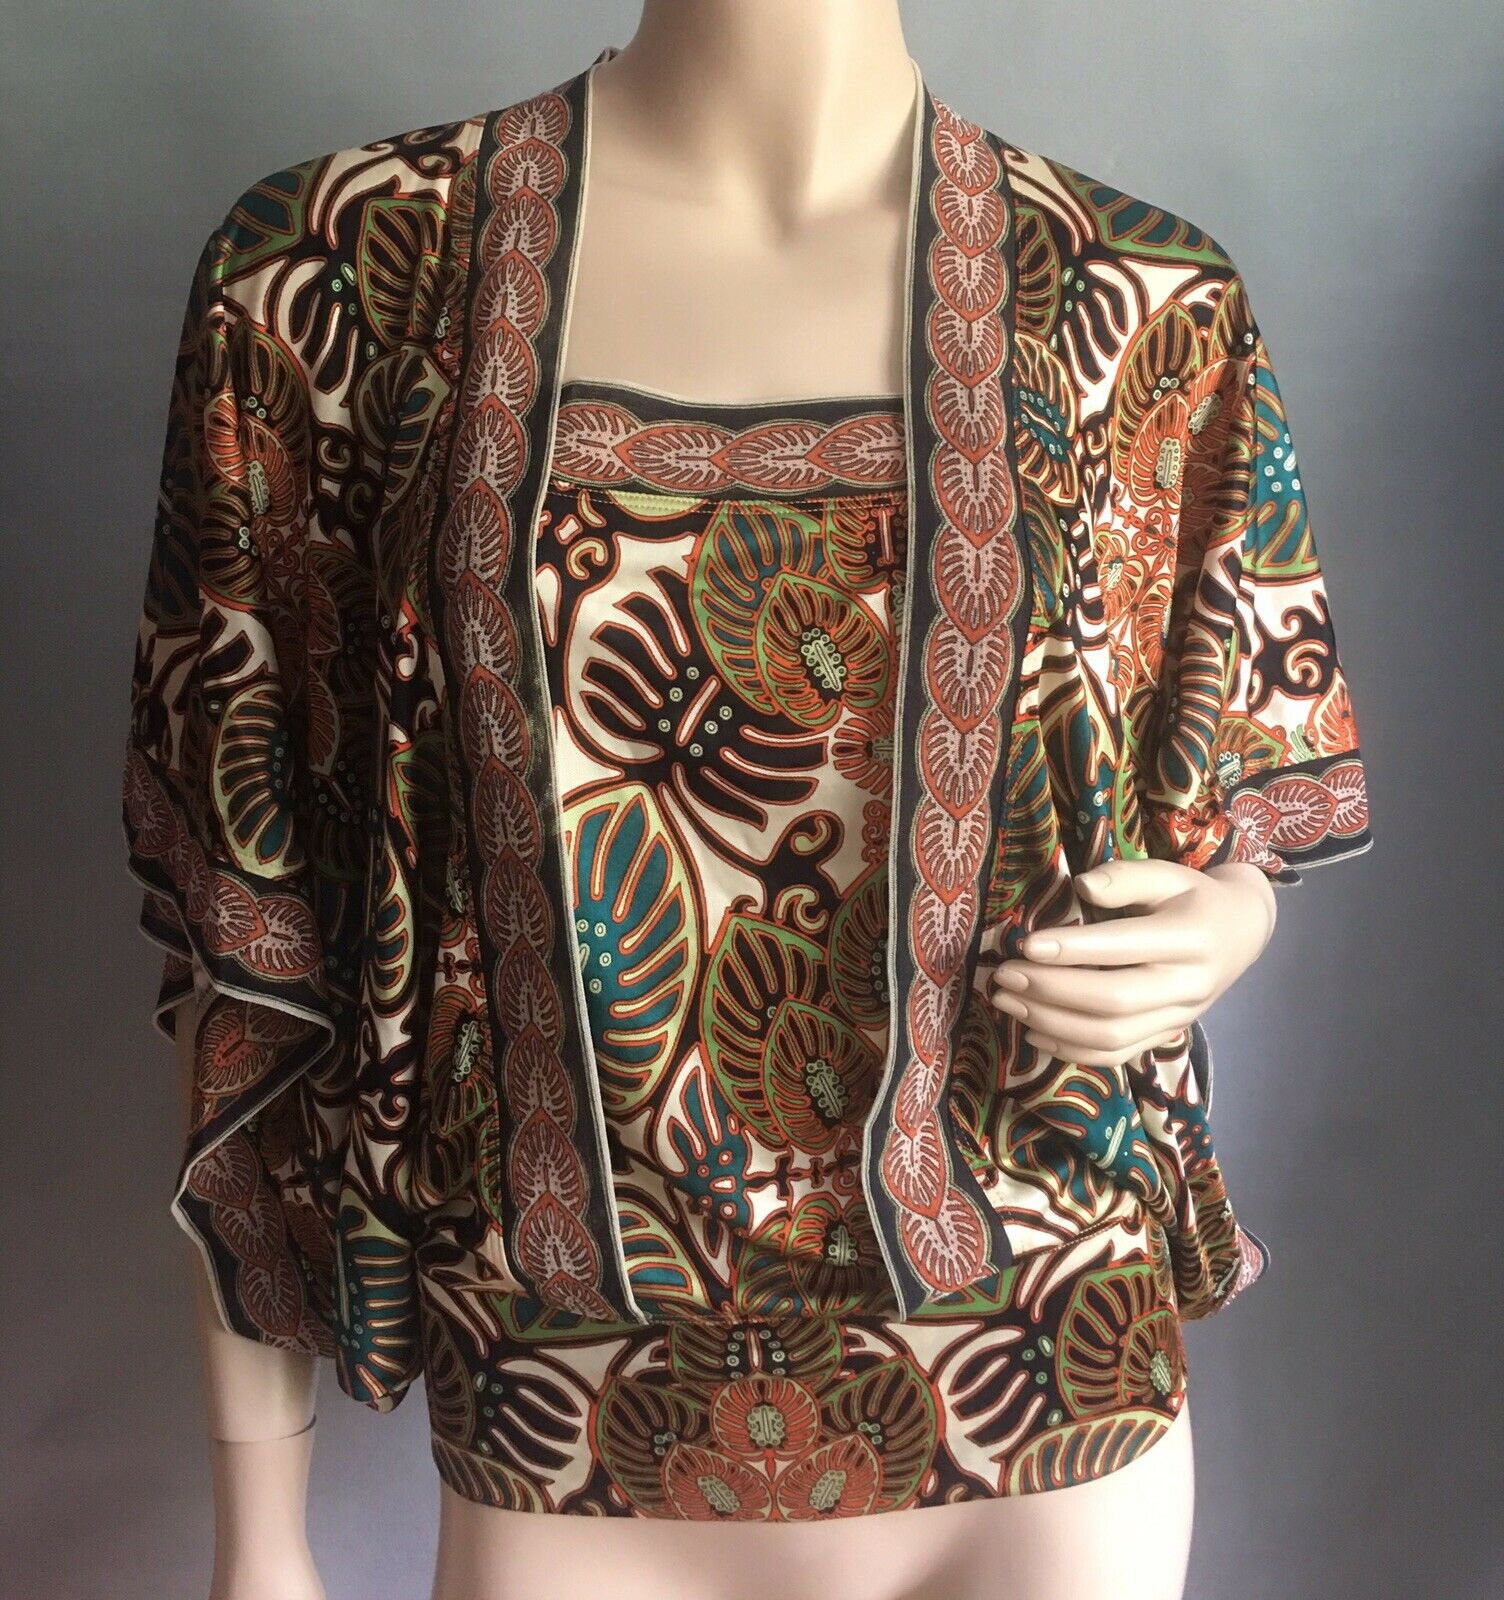 JEAN PAUL GAULTIER Soleil Viscose Leaves Blouse sz M Mint